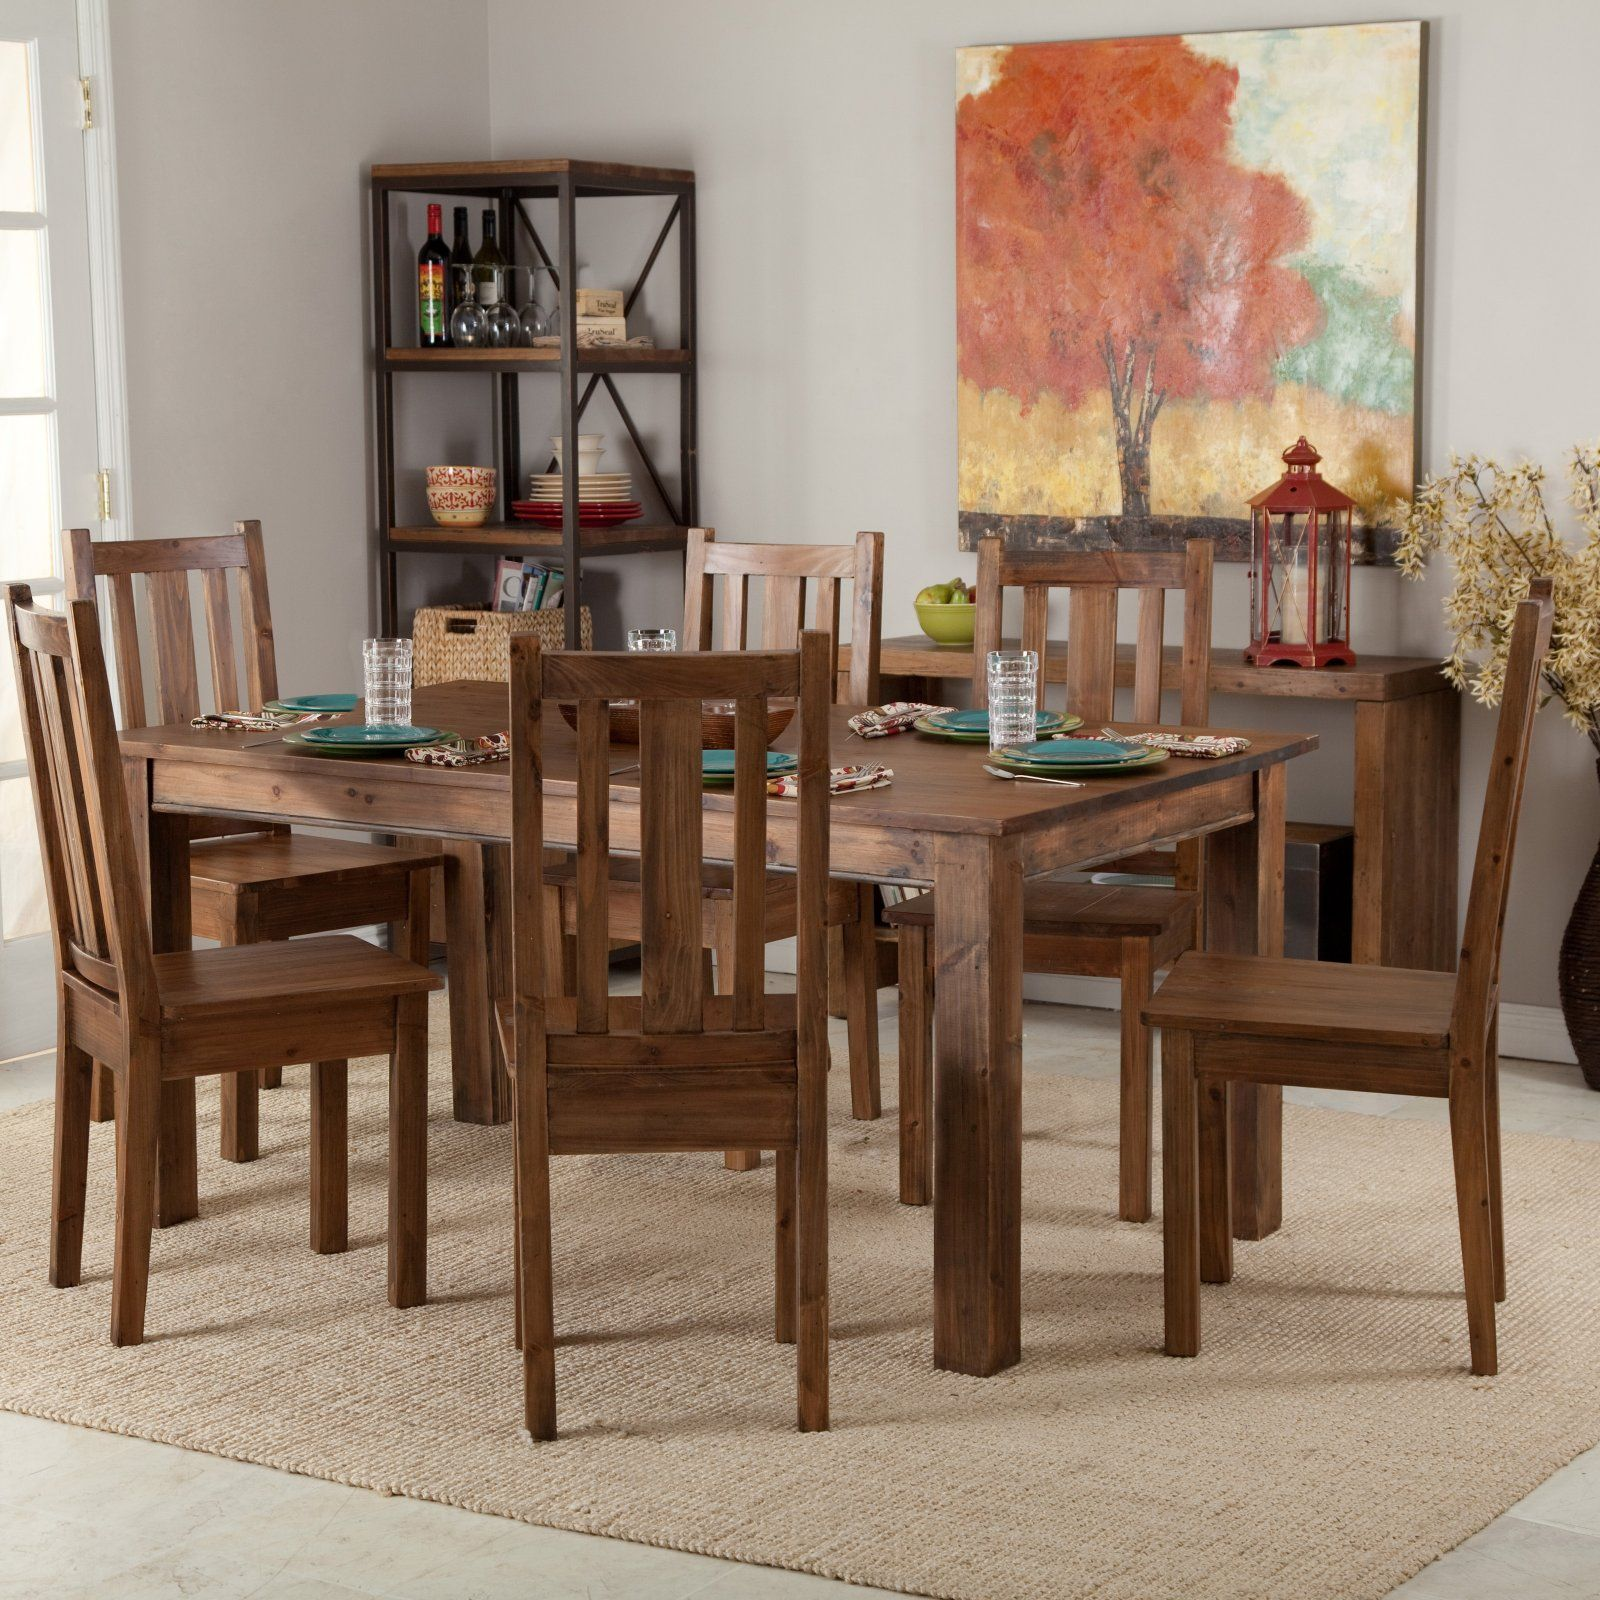 Townsend Rustic Wood Dining Table Set. Hopefully going to see this in my new apartment by October! :)